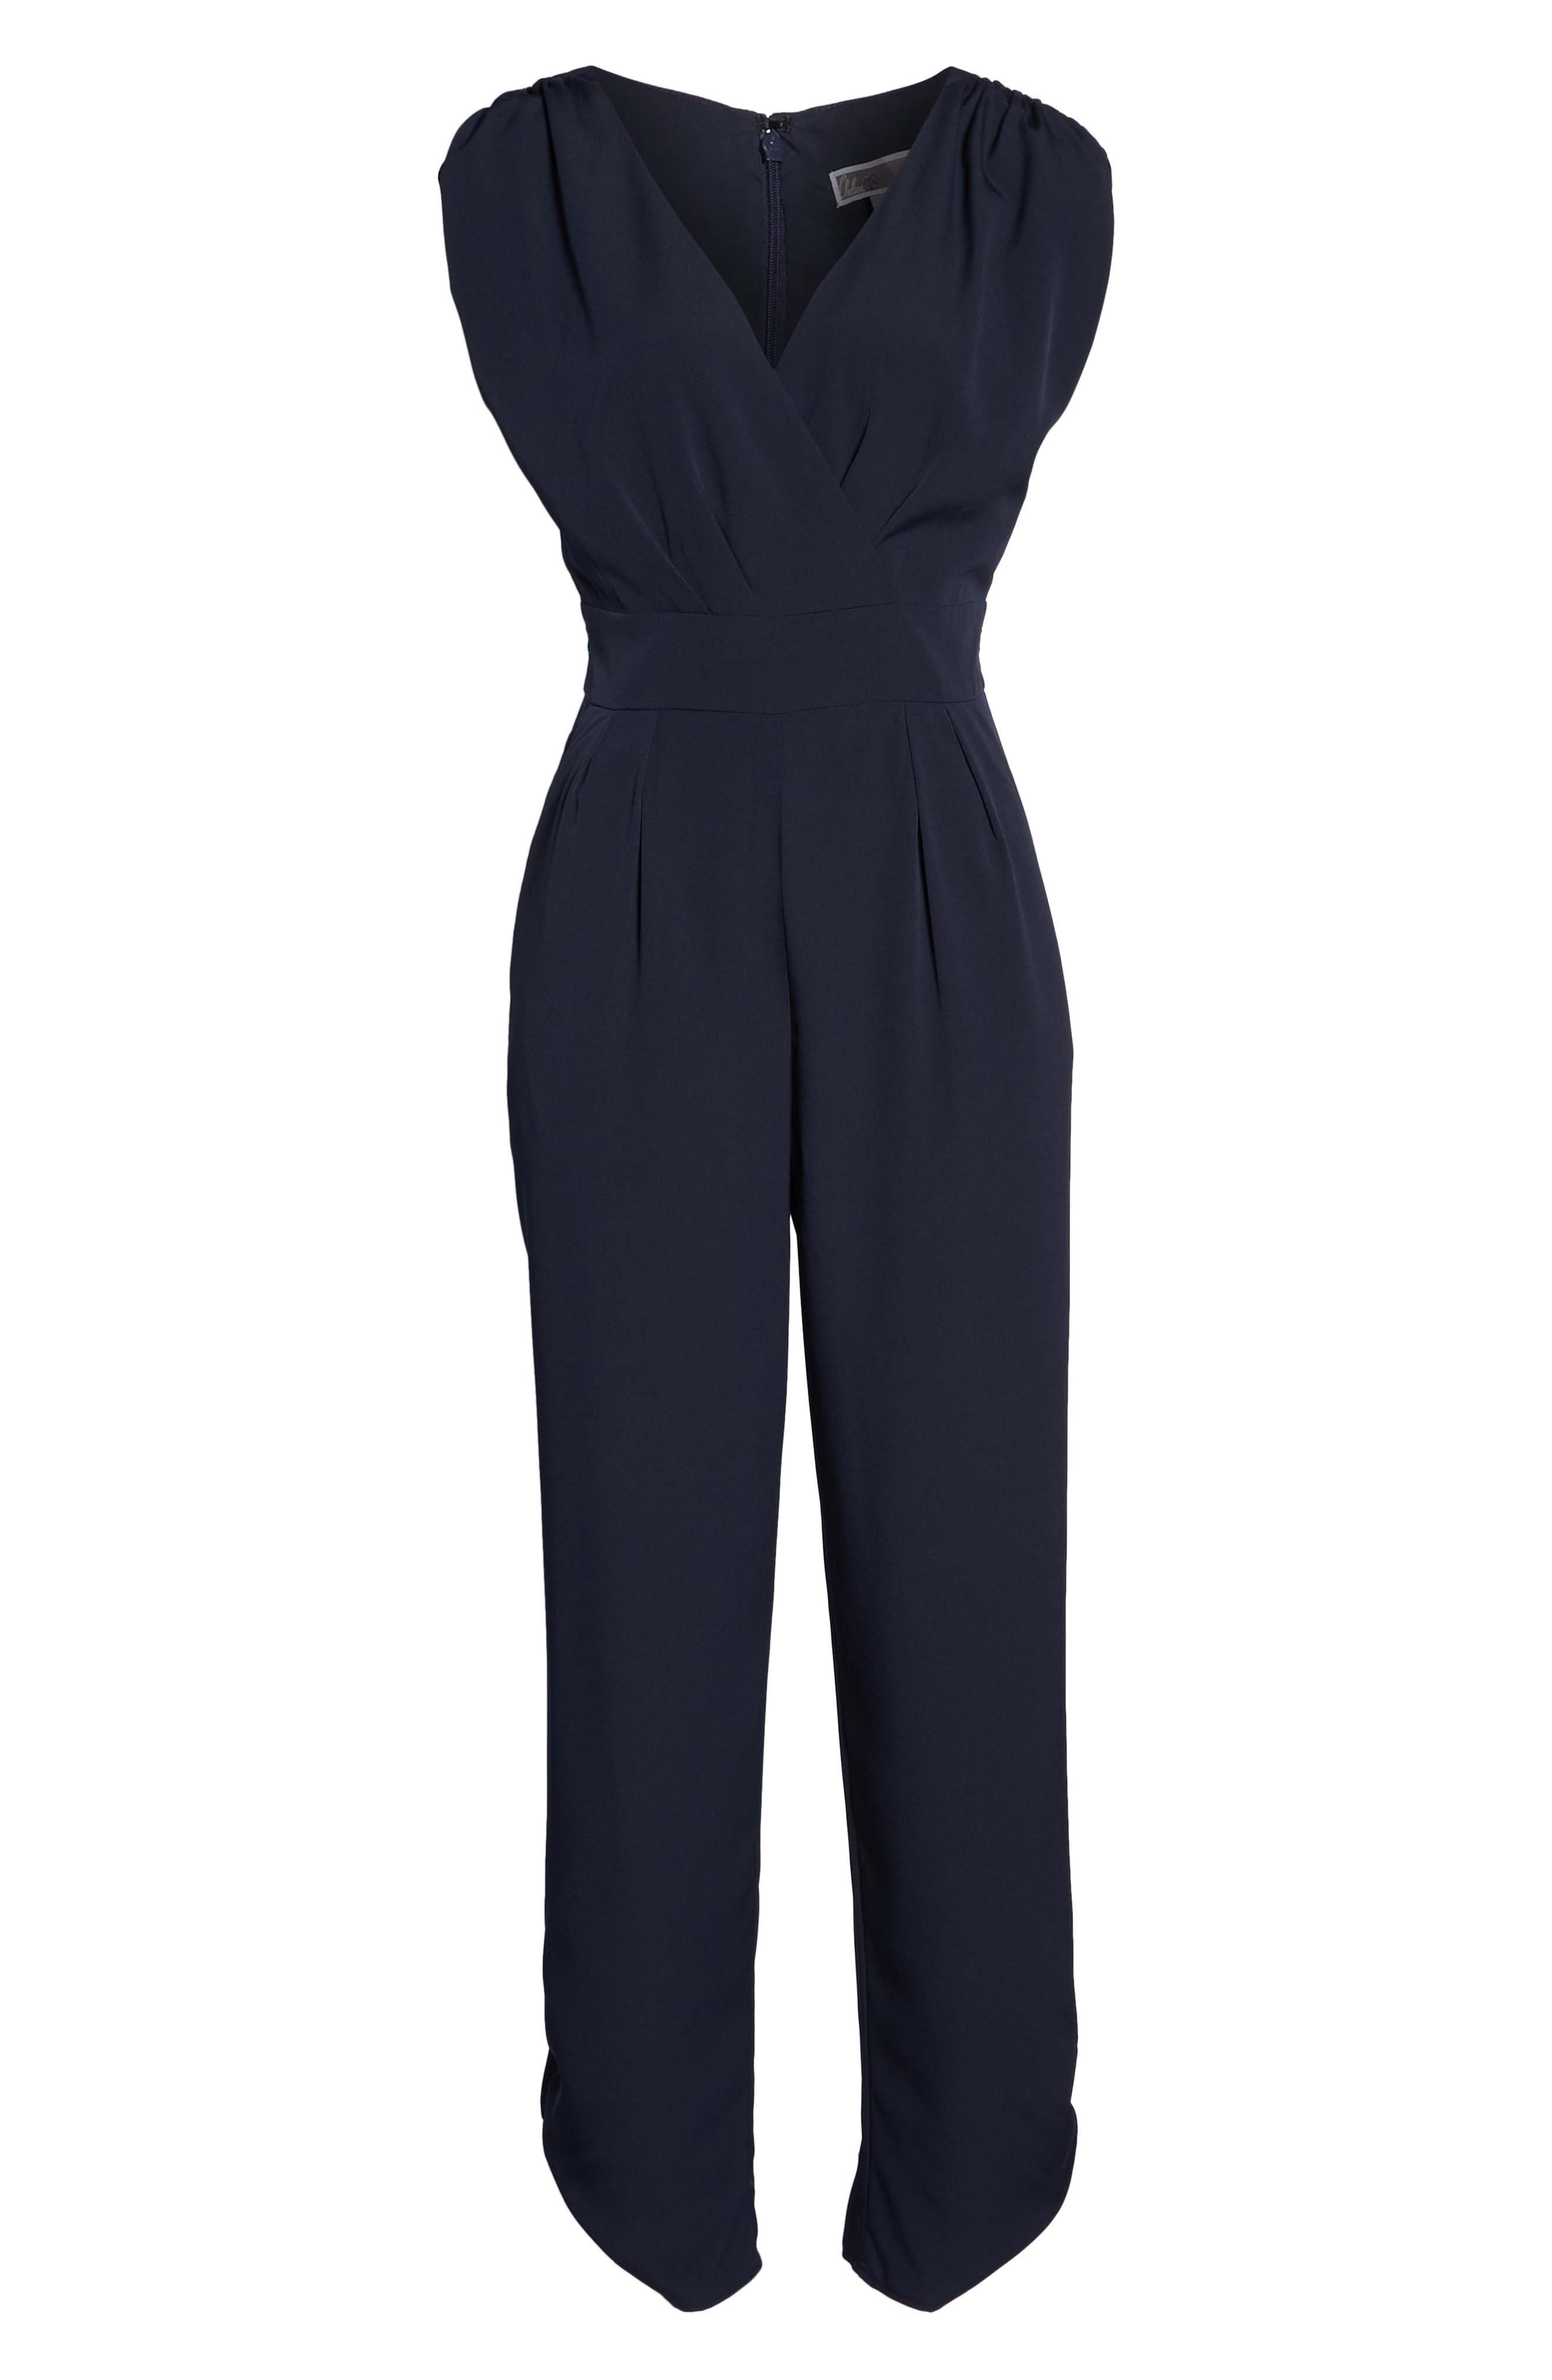 Ruched Ankle Jumpsuit,                             Alternate thumbnail 8, color,                             410